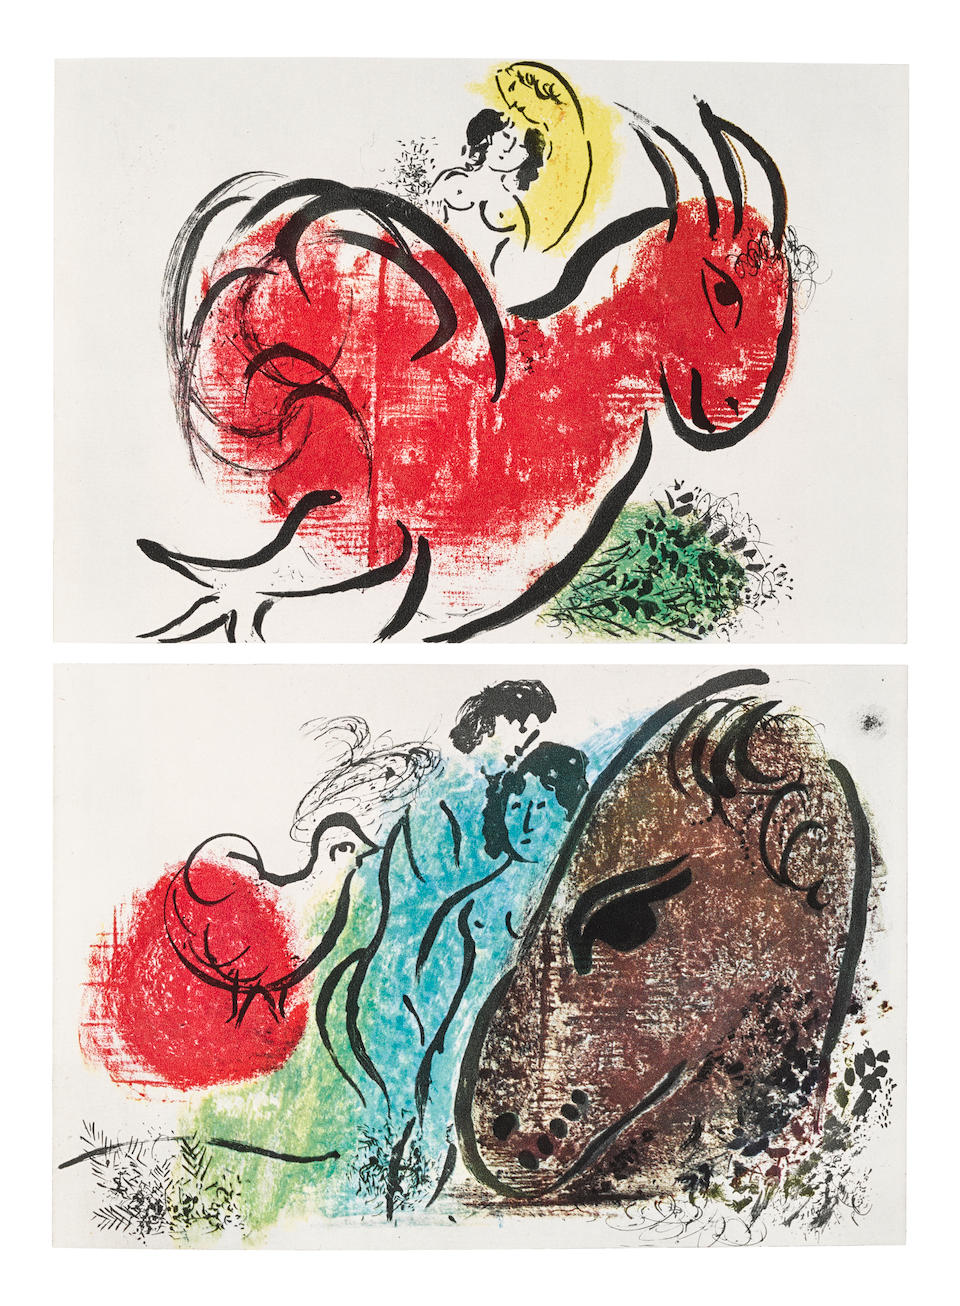 CHAGALL, MARC. 1887-1985.  The Lithographs of Chagall.   Monte Carlo and Boston: André Sauret, George Braziller and Boston Book and Art Shop, 1960-1963-1969.